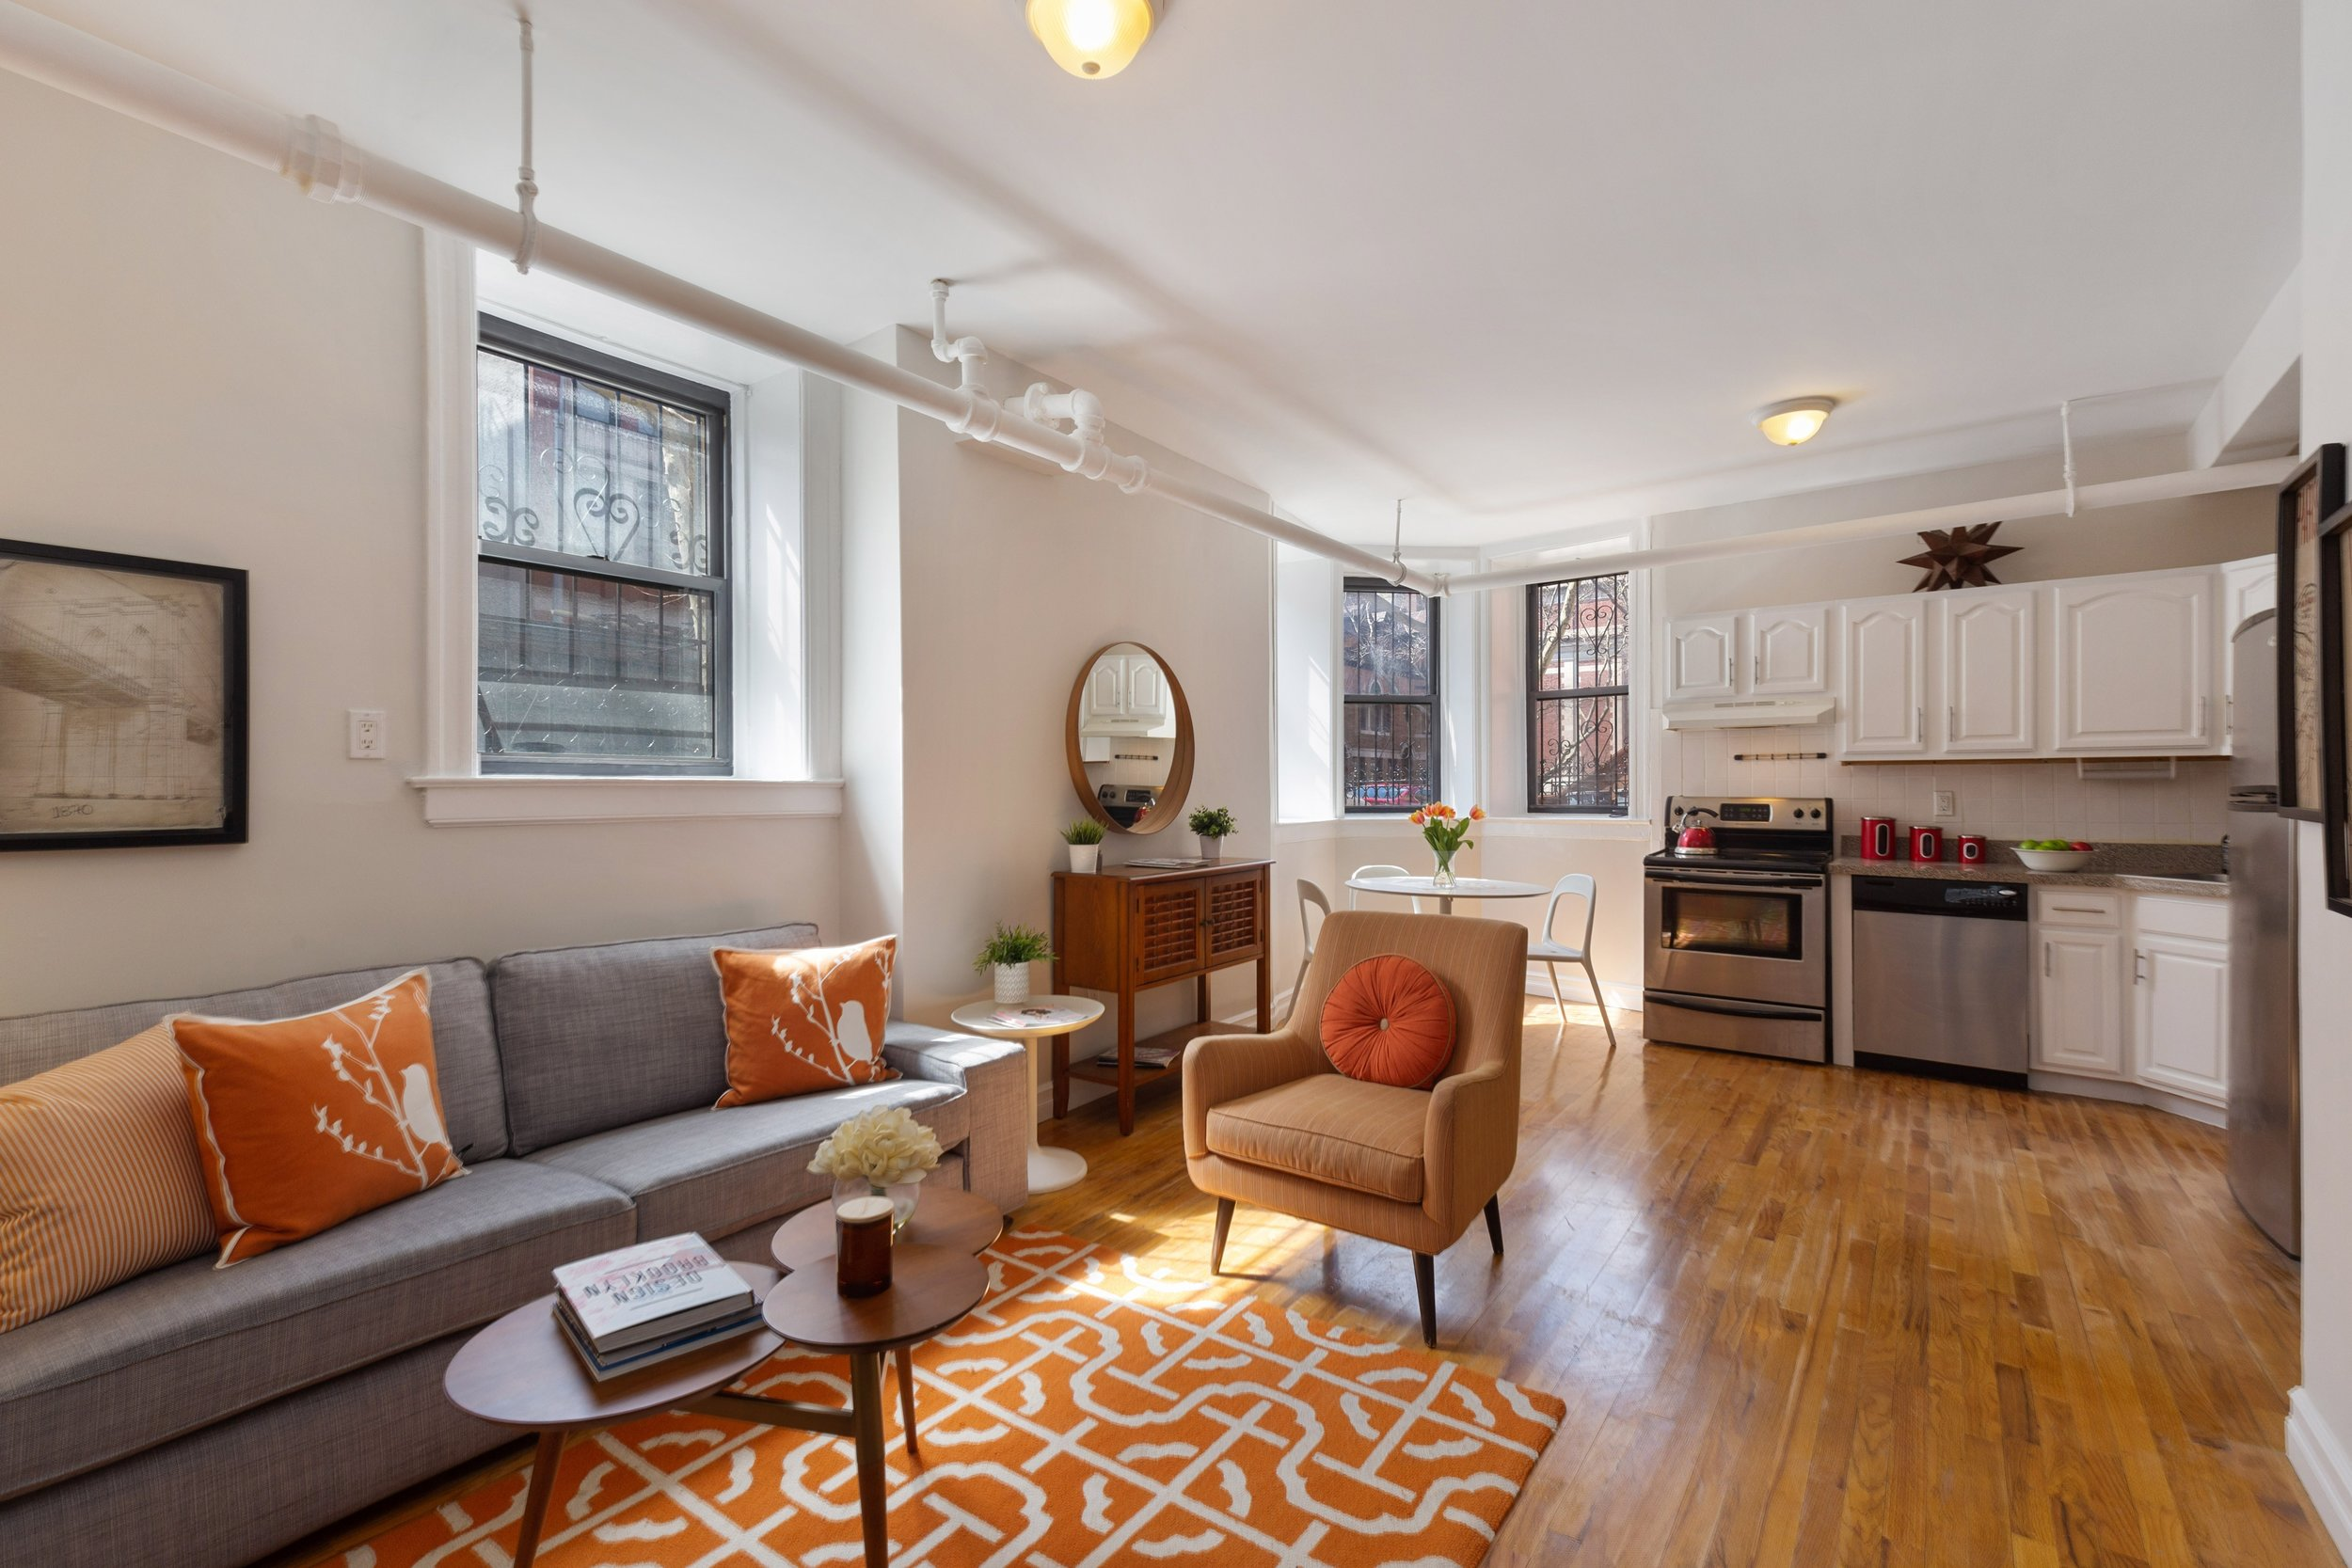 320 8th Avenue - Apt. B1, Park slope, BK